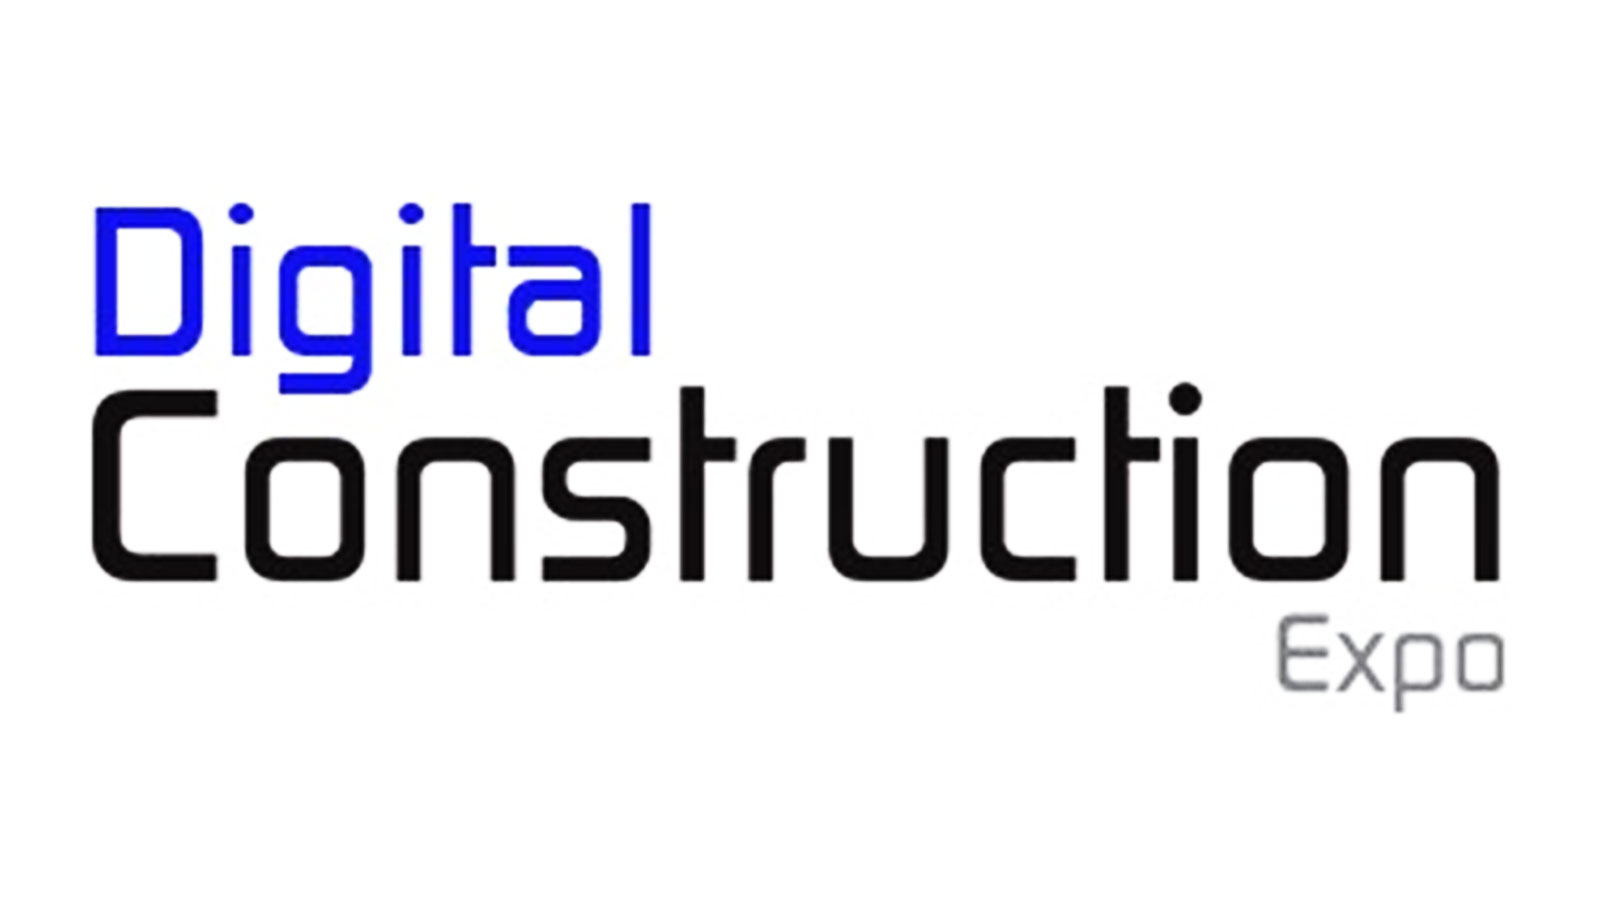 Digital Construction Expo, Johannesburg